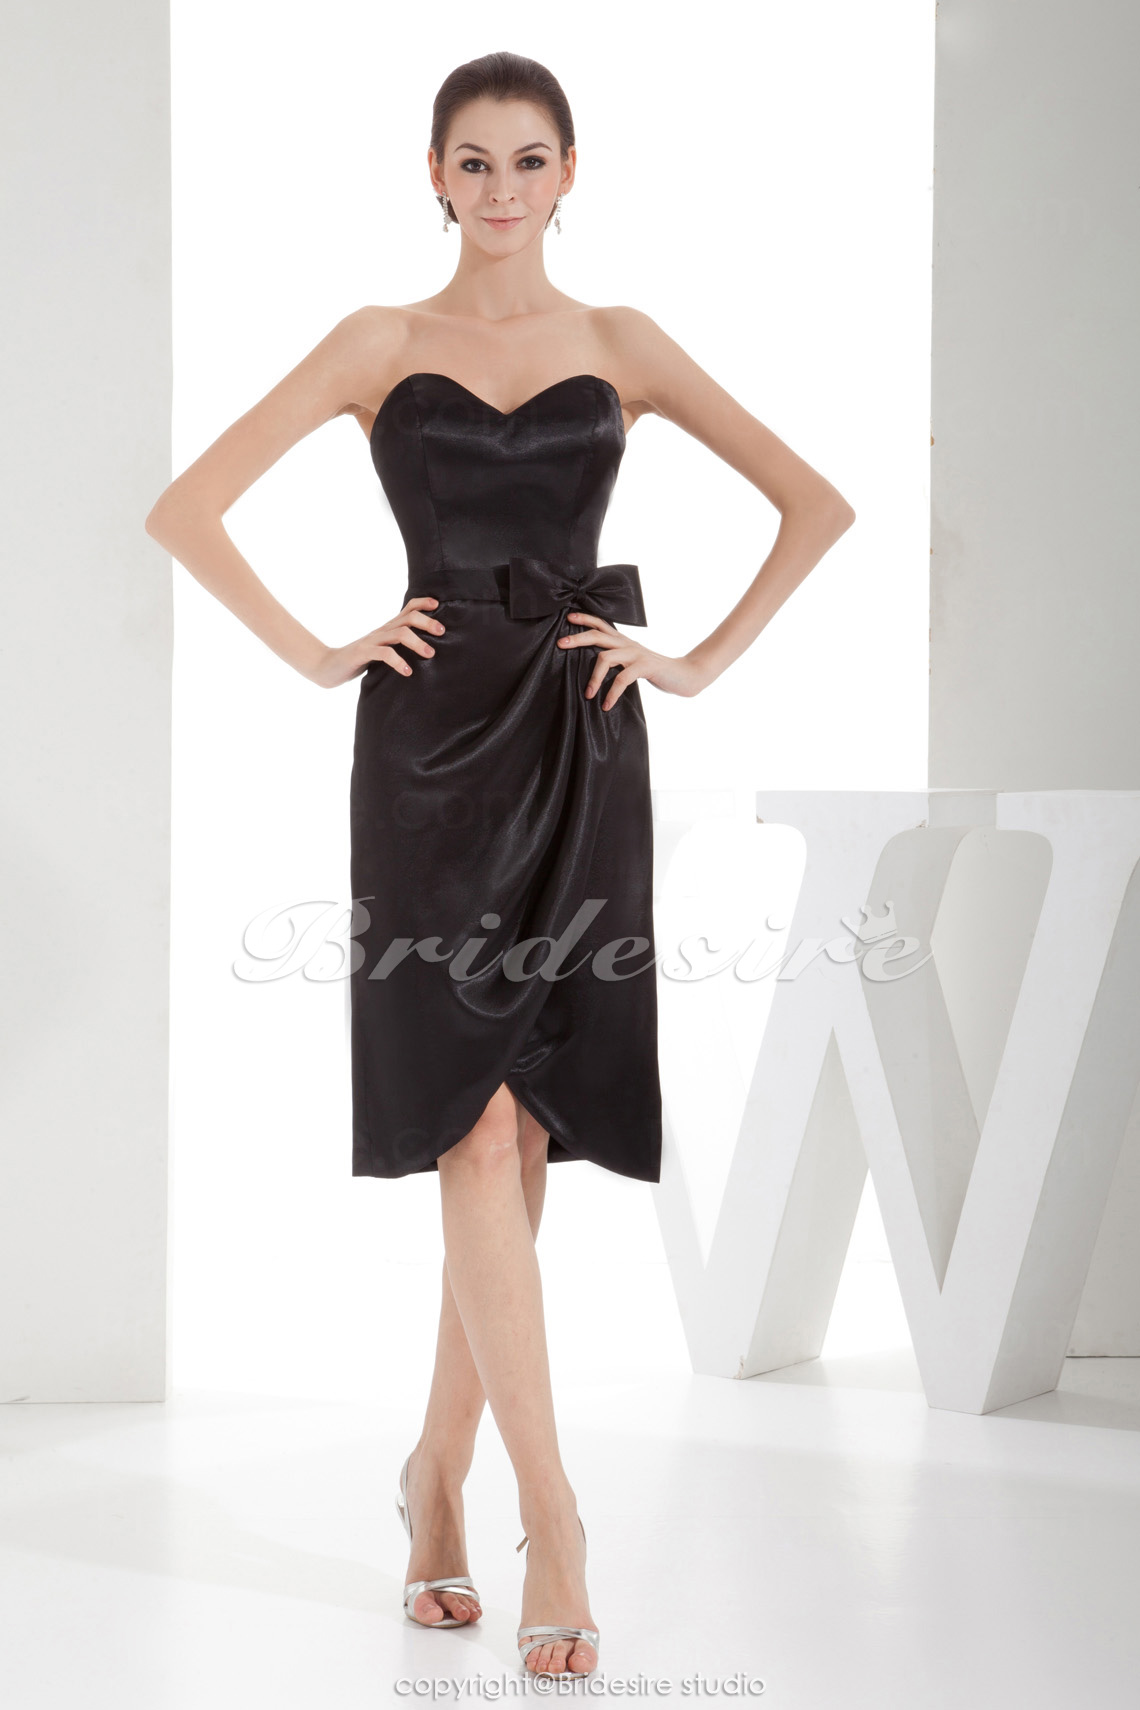 Sheath/Column Sweetheart Knee-length Sleeveless Satin Bridesmaid Dress